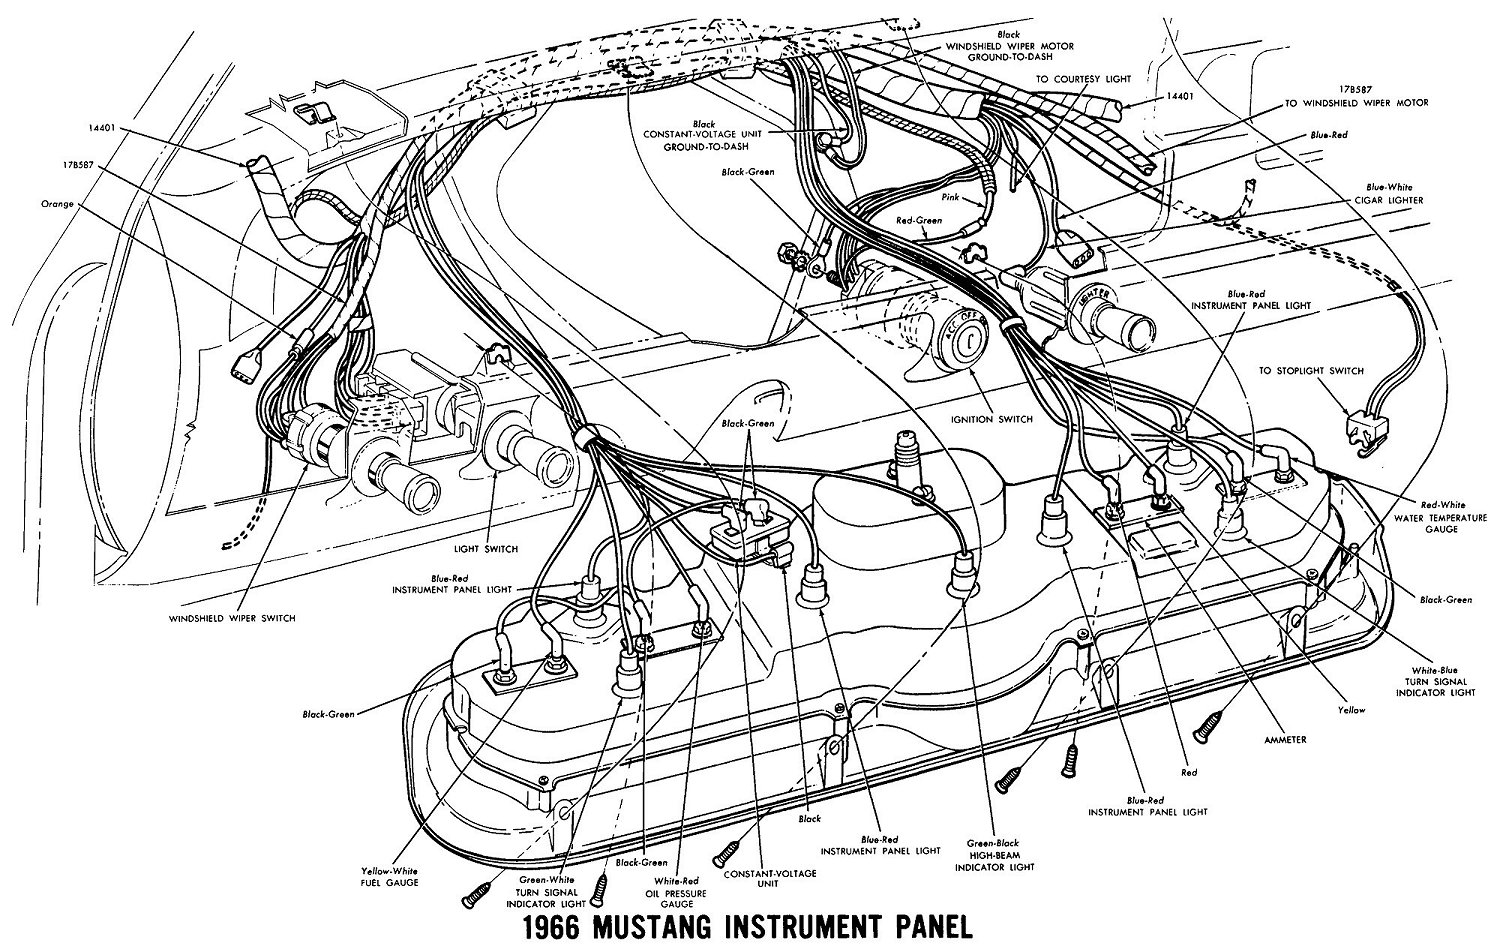 66instr 1966 mustang wiring diagrams average joe restoration 1967 mustang instrument cluster wiring diagram at sewacar.co